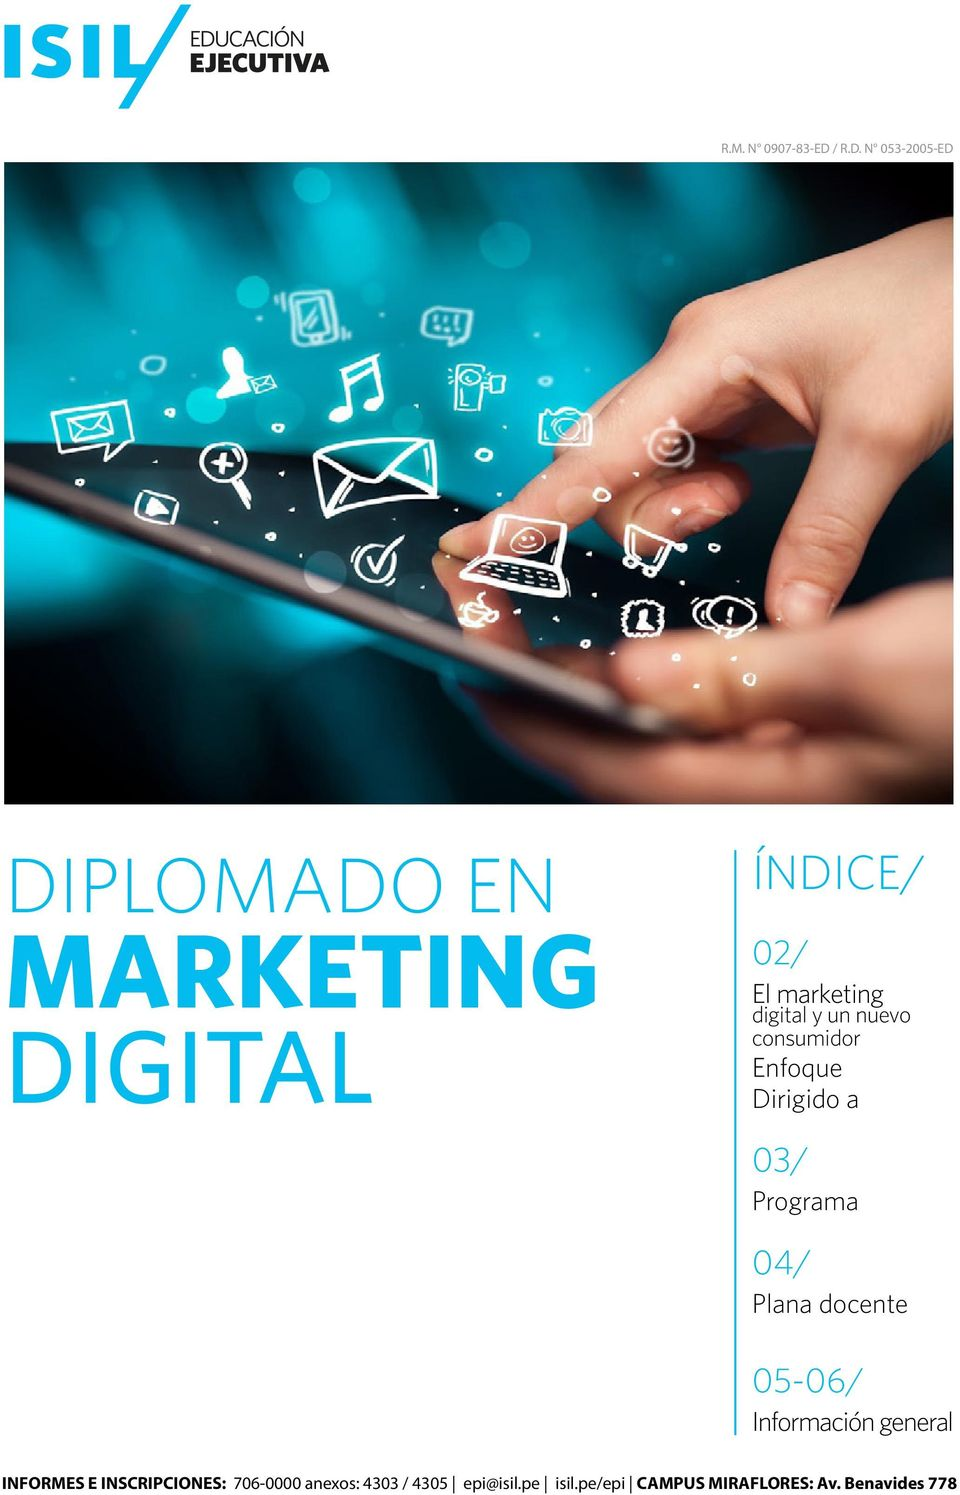 N 053-2005-ED DIPLOMADO EN MARKETING DIGITAL